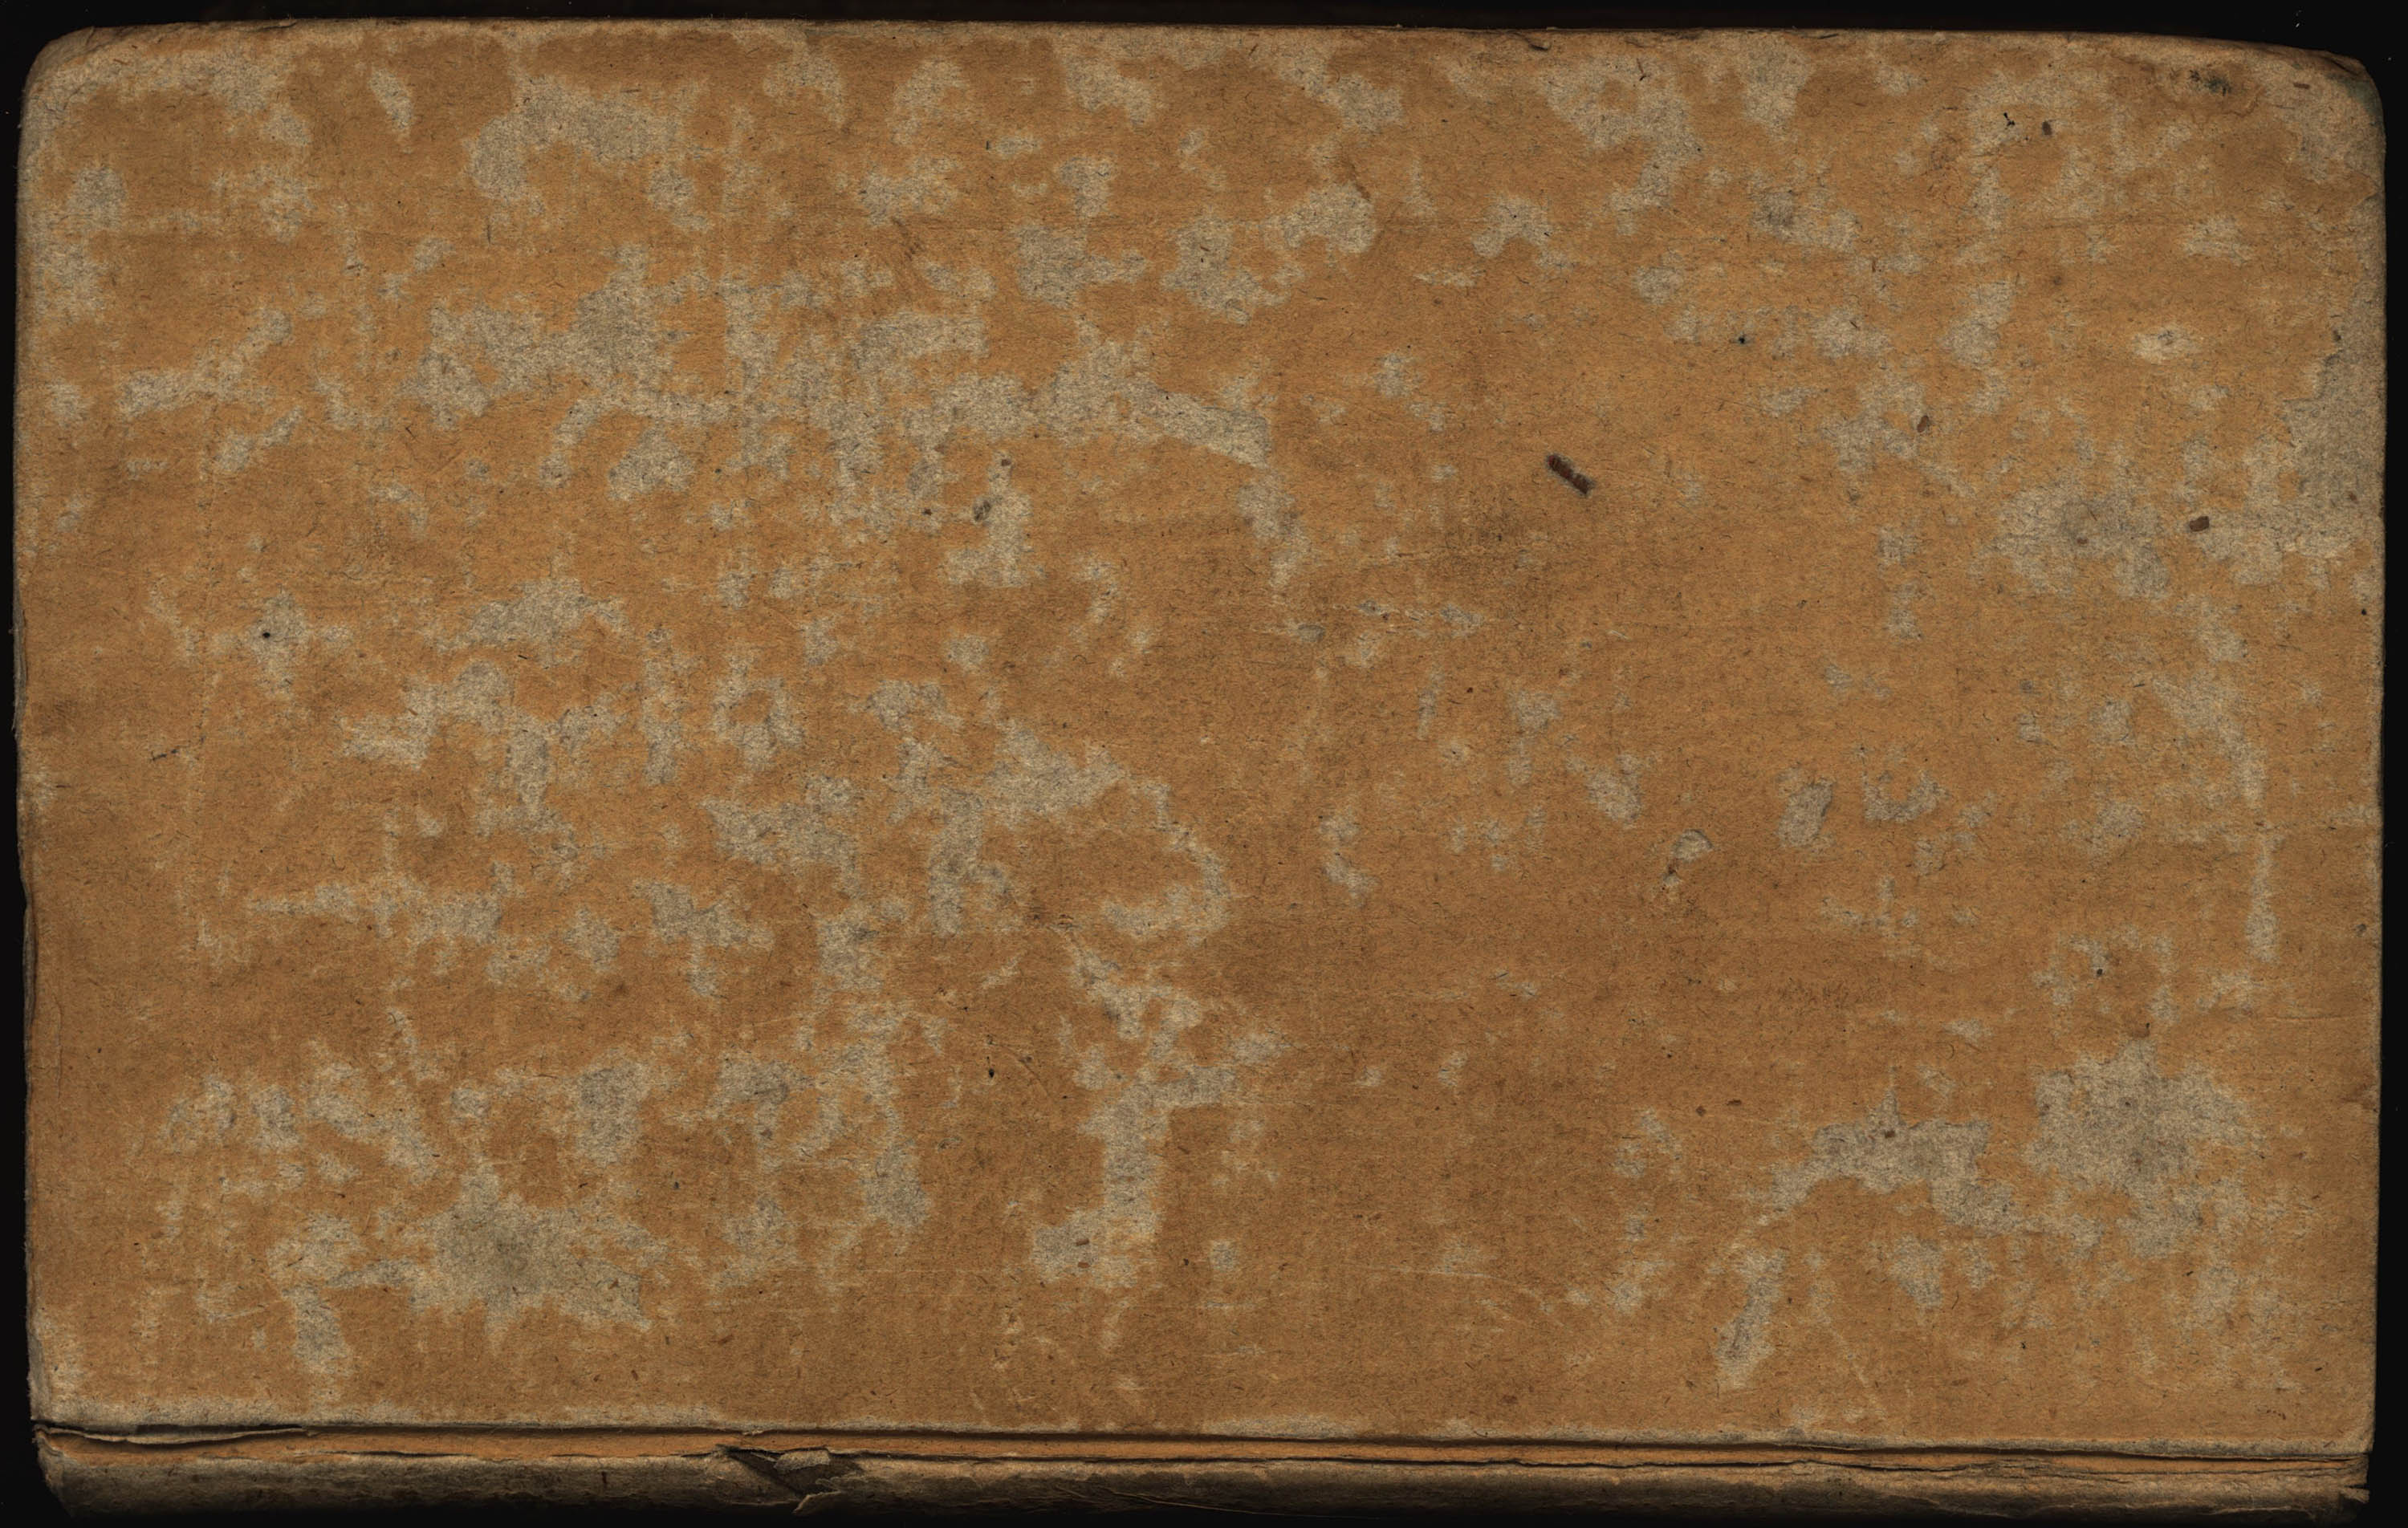 7 Vintage Paper Book Cover Texture | Textures for photoshop free